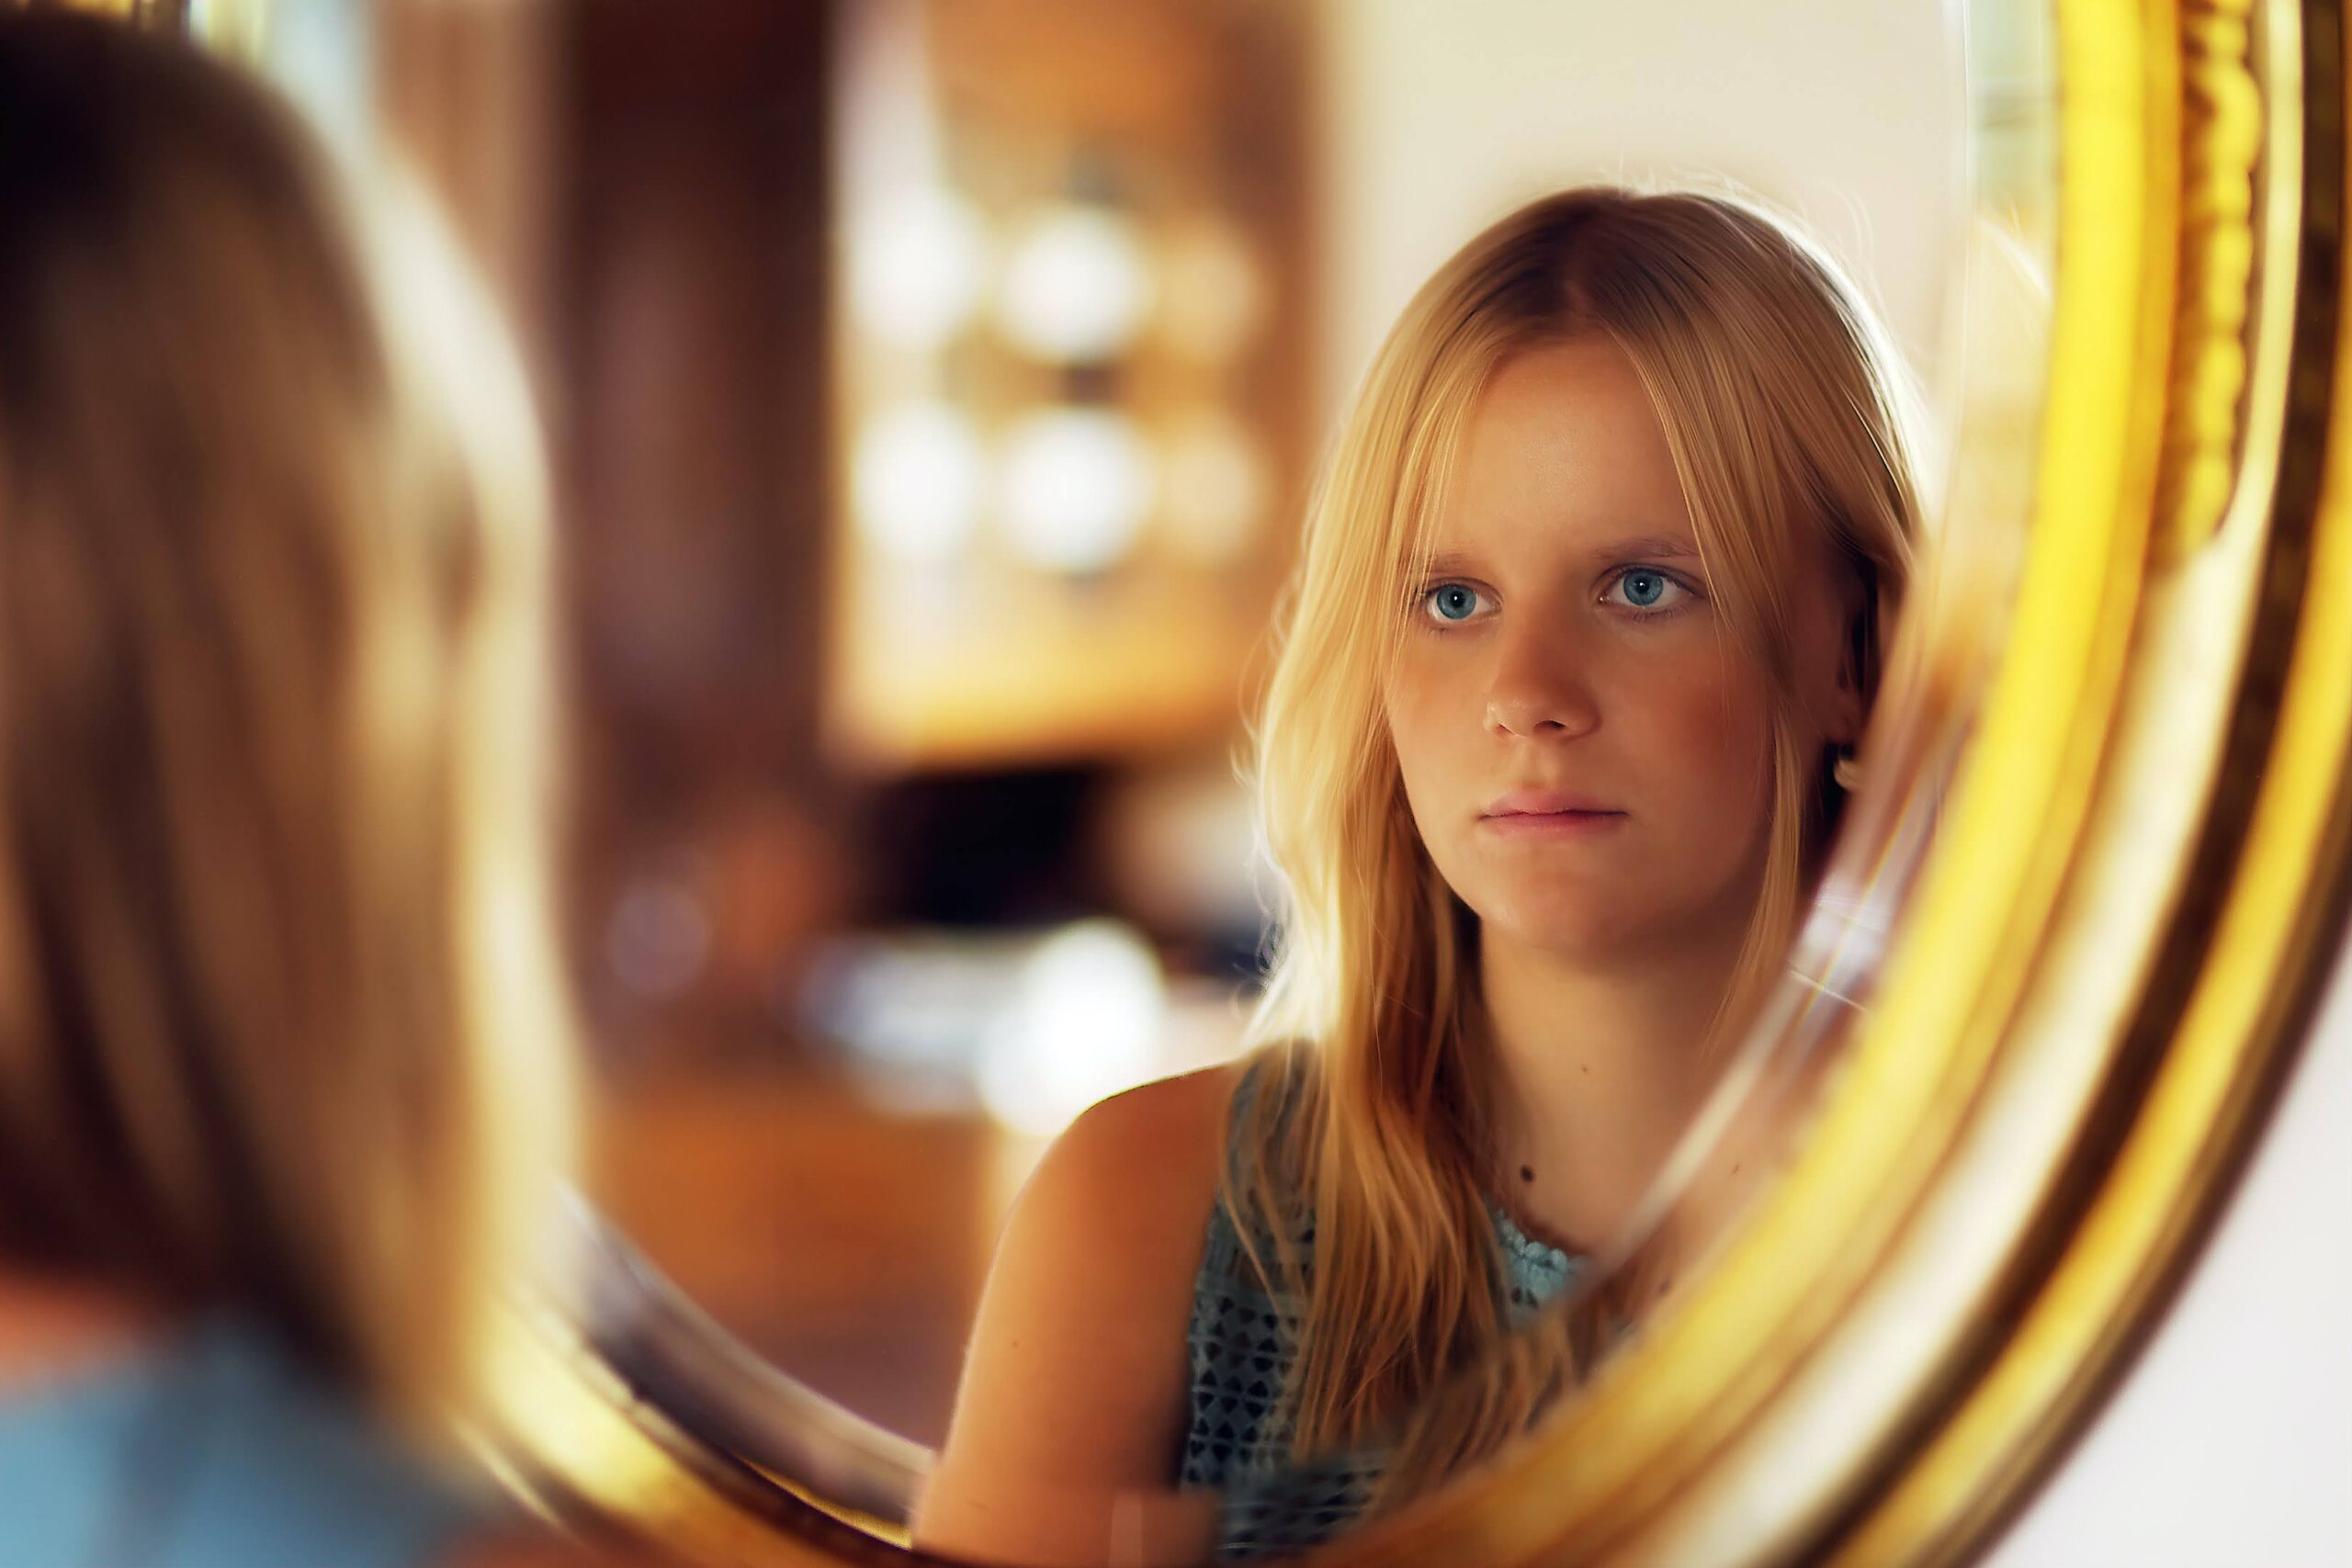 New study says body dysmorpia is linked to eating disorders